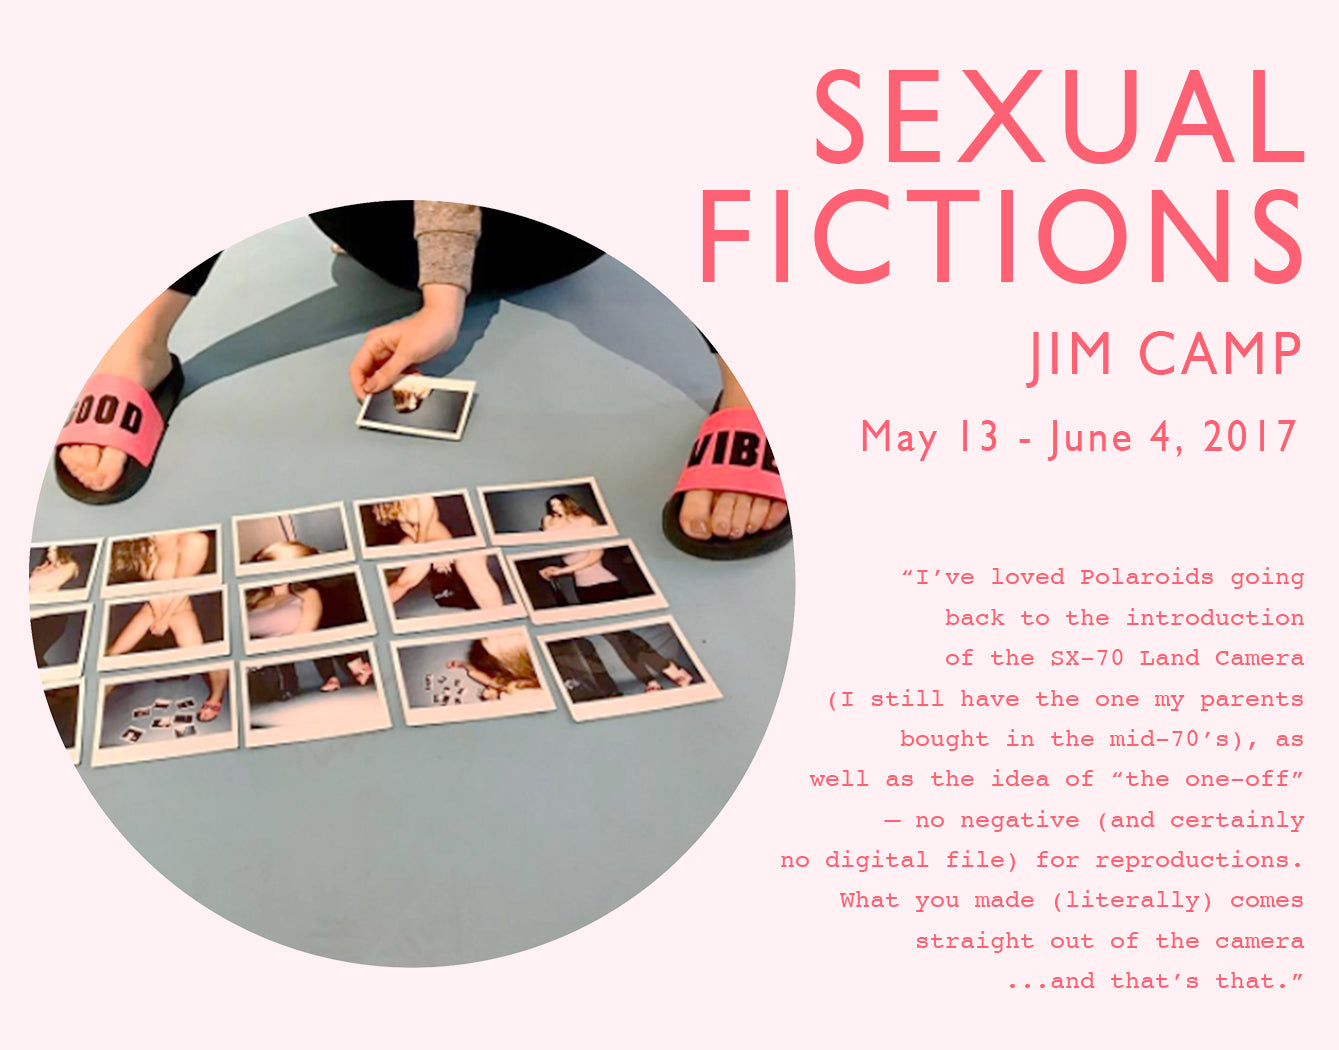 SEXUAL FICTIONS | Jim Camp